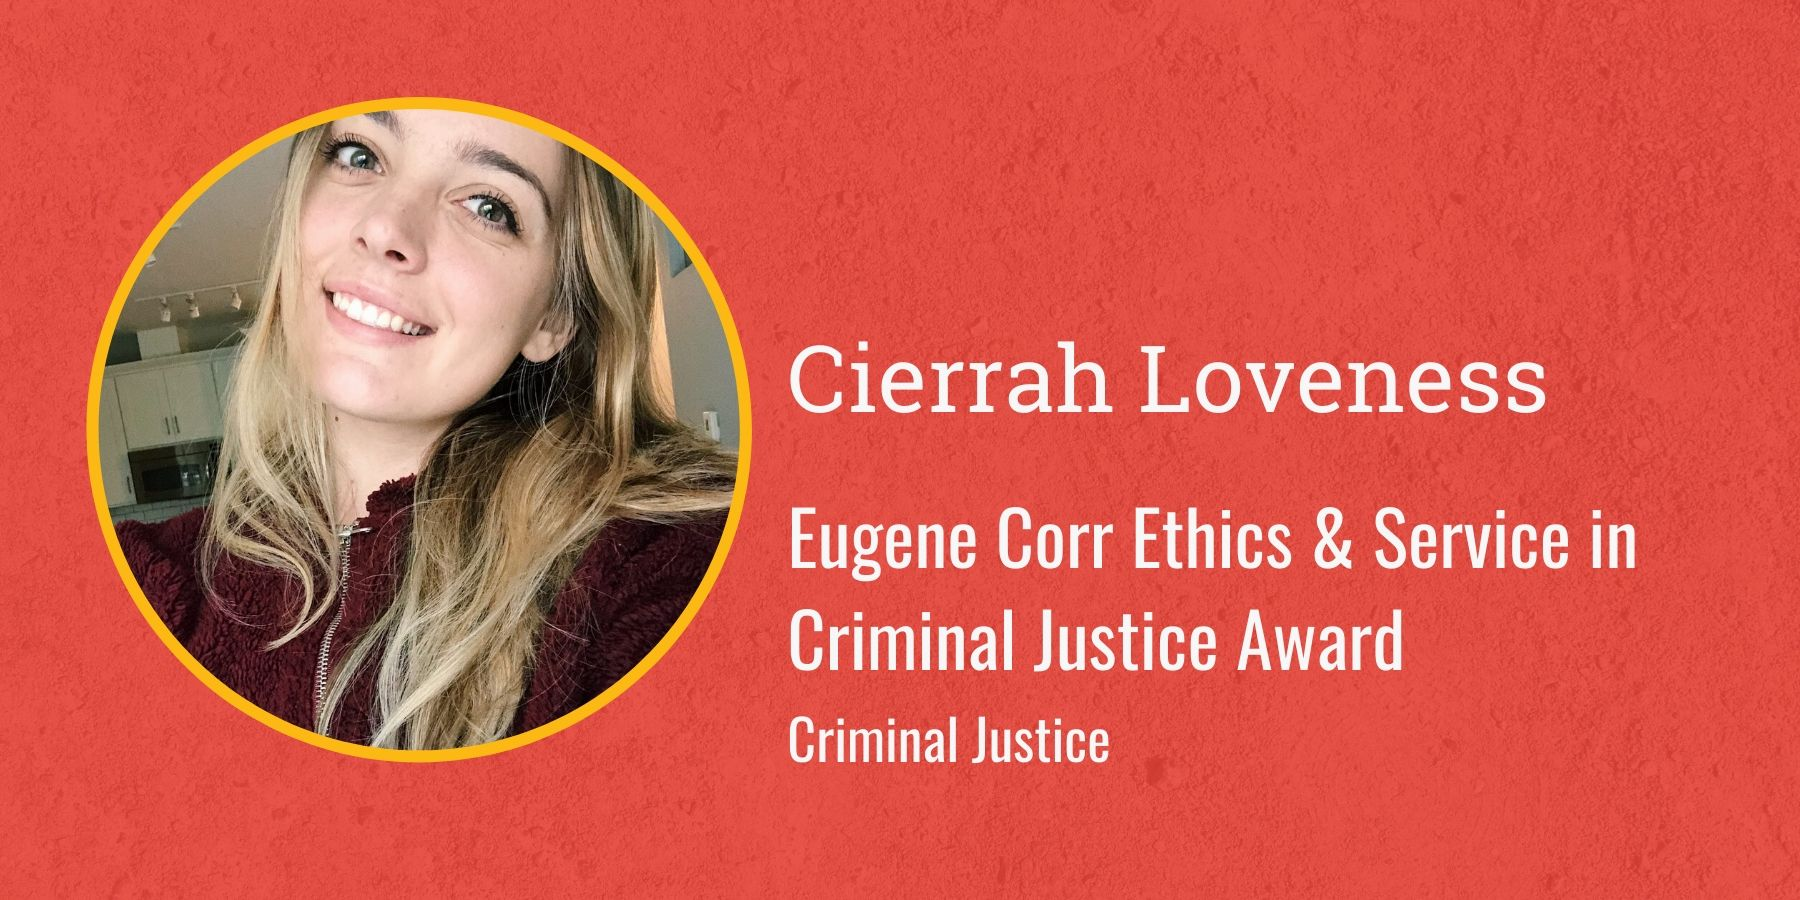 Photo of Cierrah Loveness and text Eugene Corr Ethics & Service in Criminal Justice Award